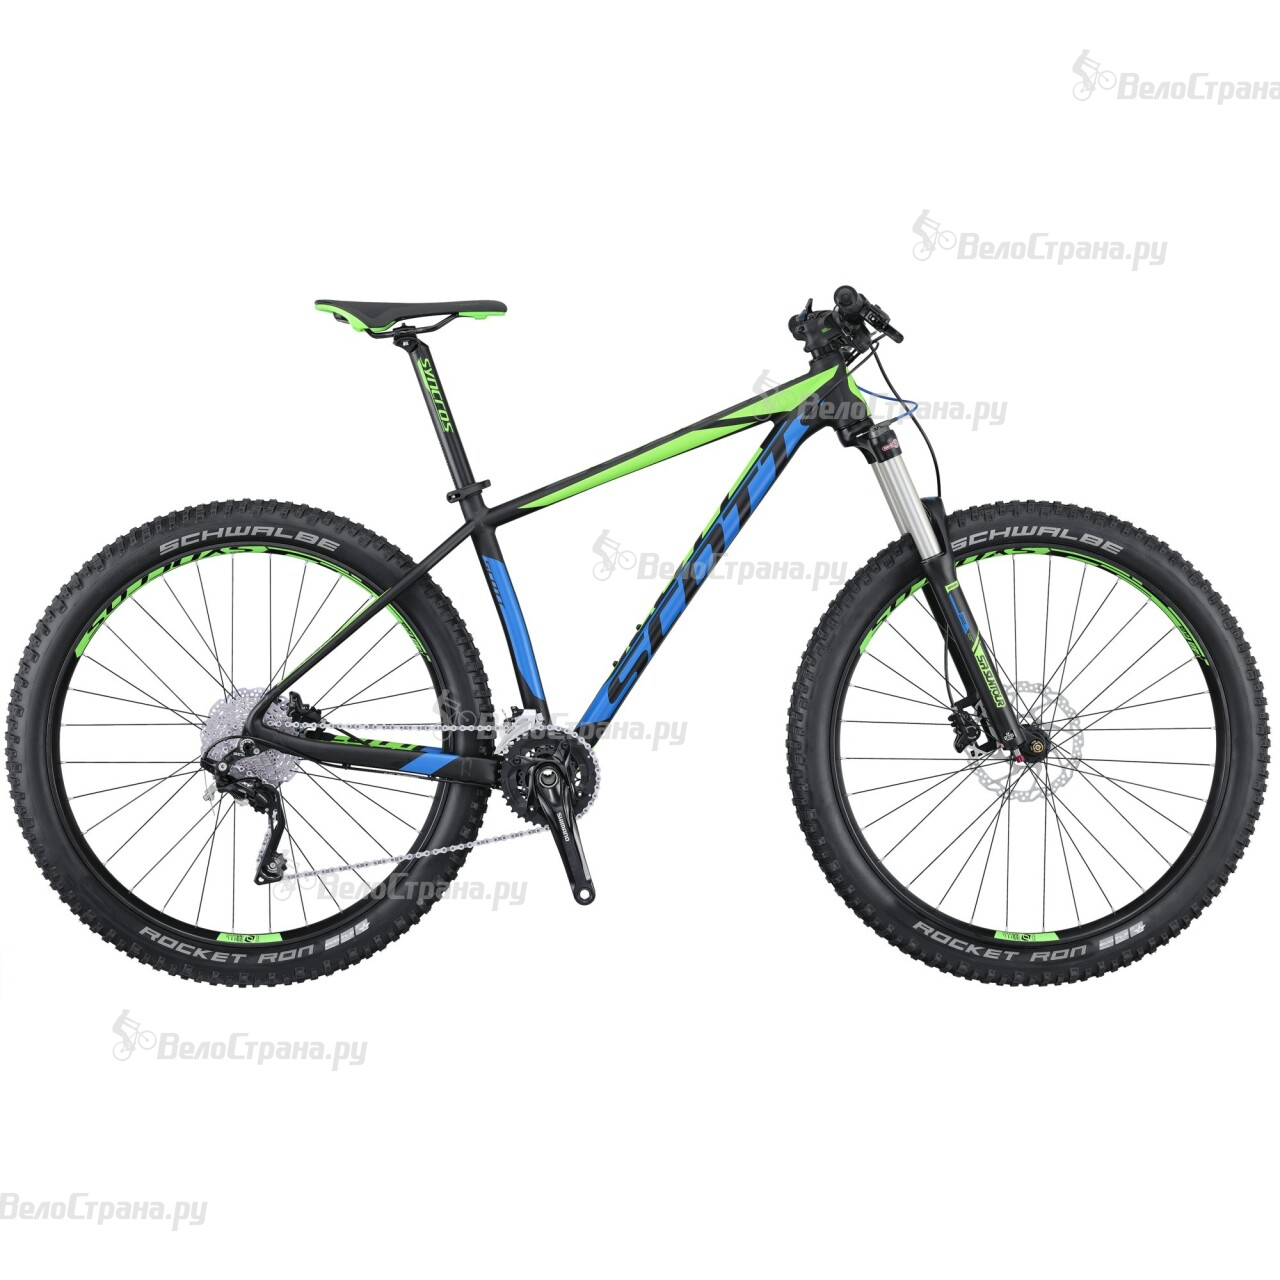 Велосипед Scott Scale 720 Plus (2016) scott scale 720 plus 2016